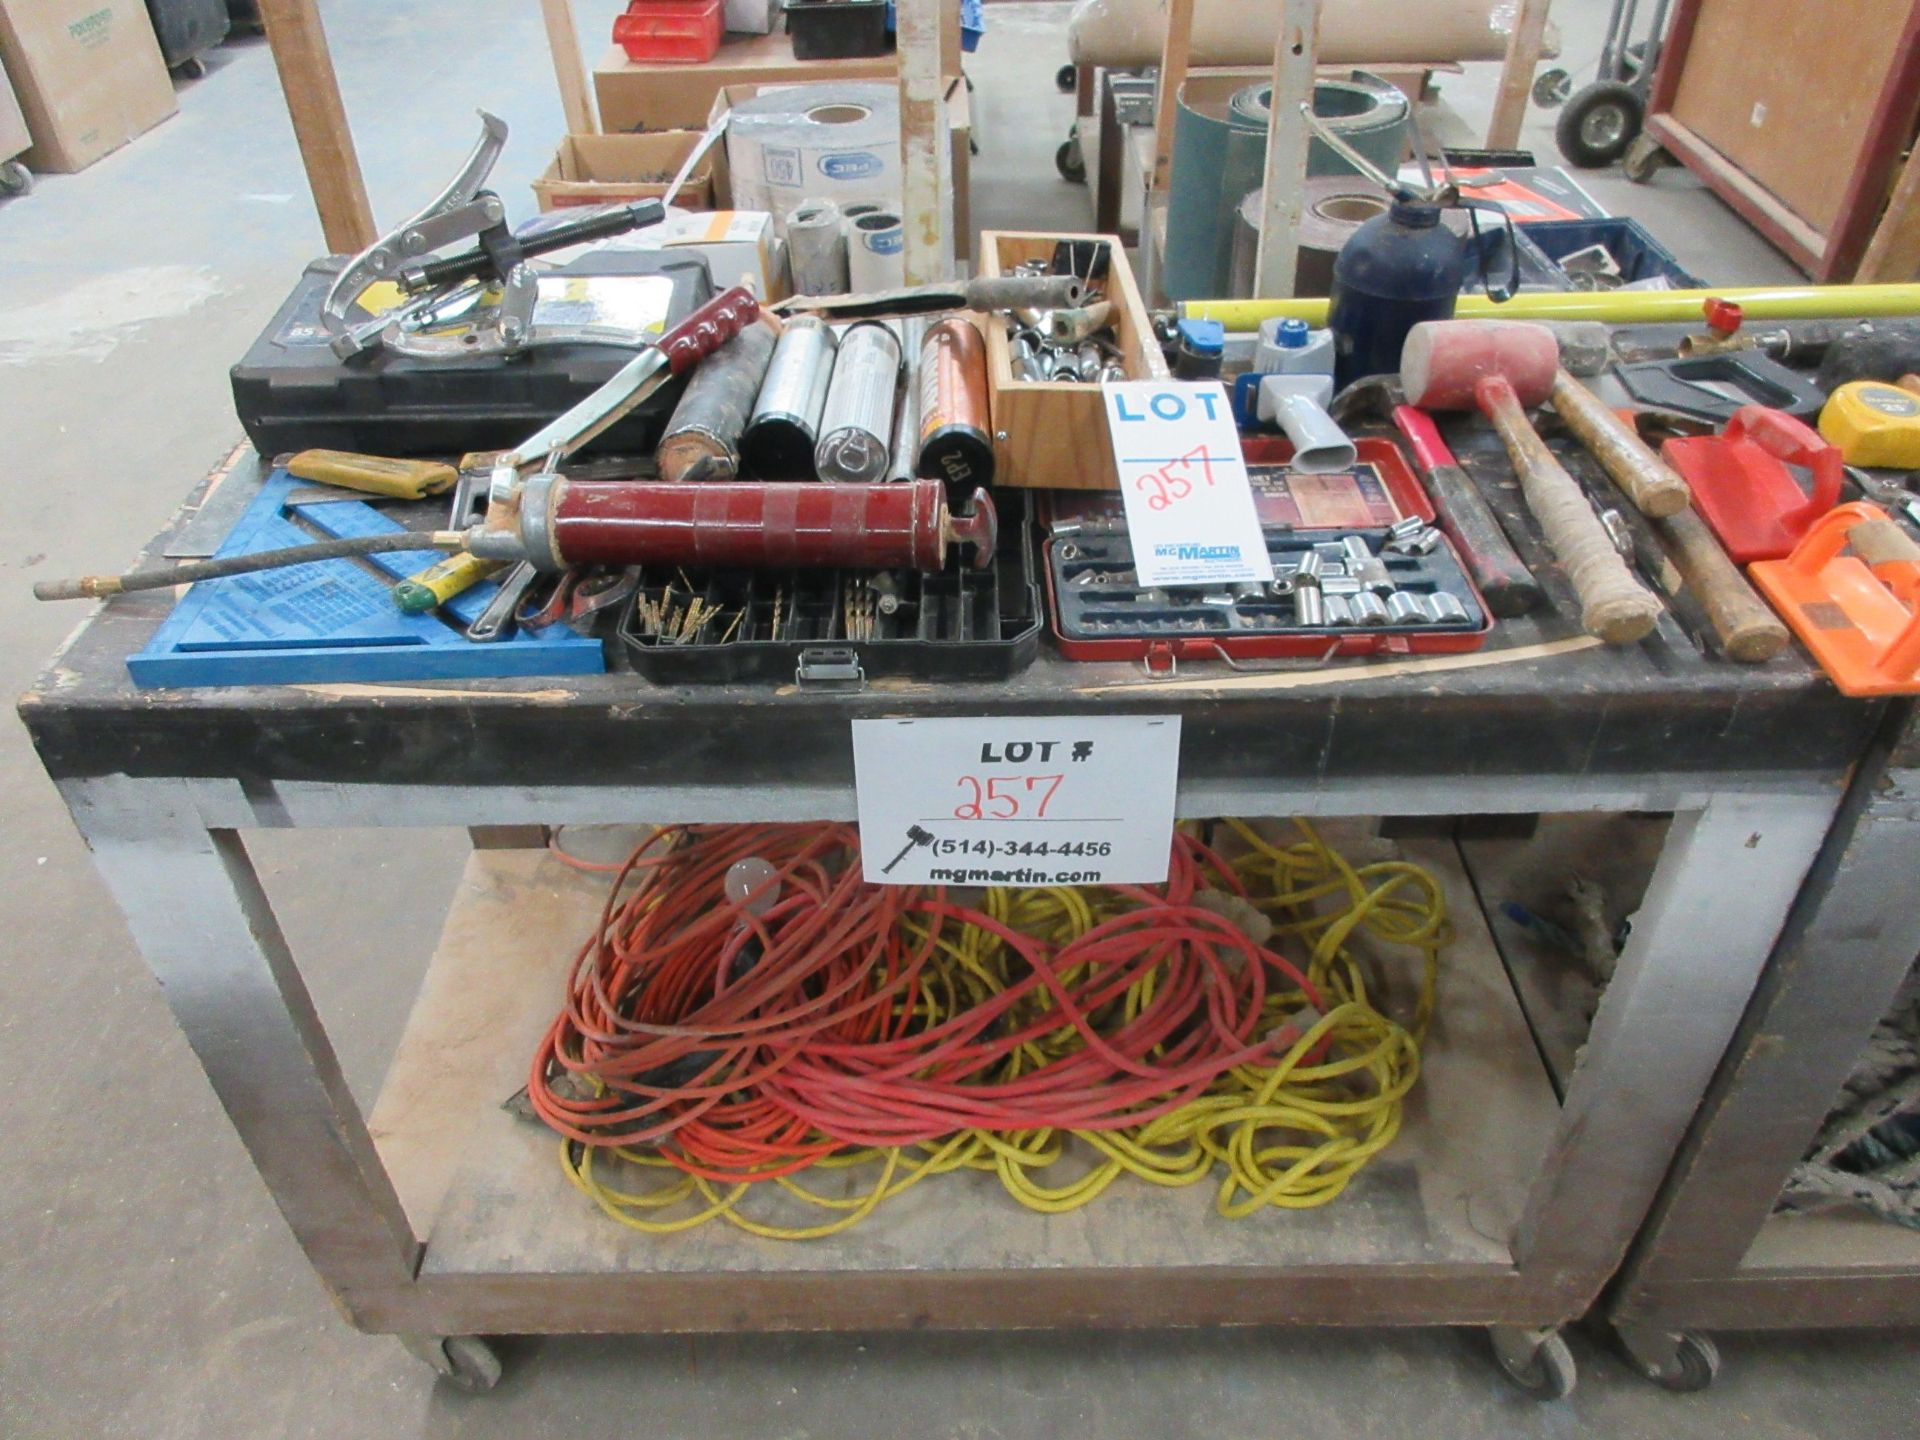 Lot 257 - LOT including assorted tools c/w cart on wheels